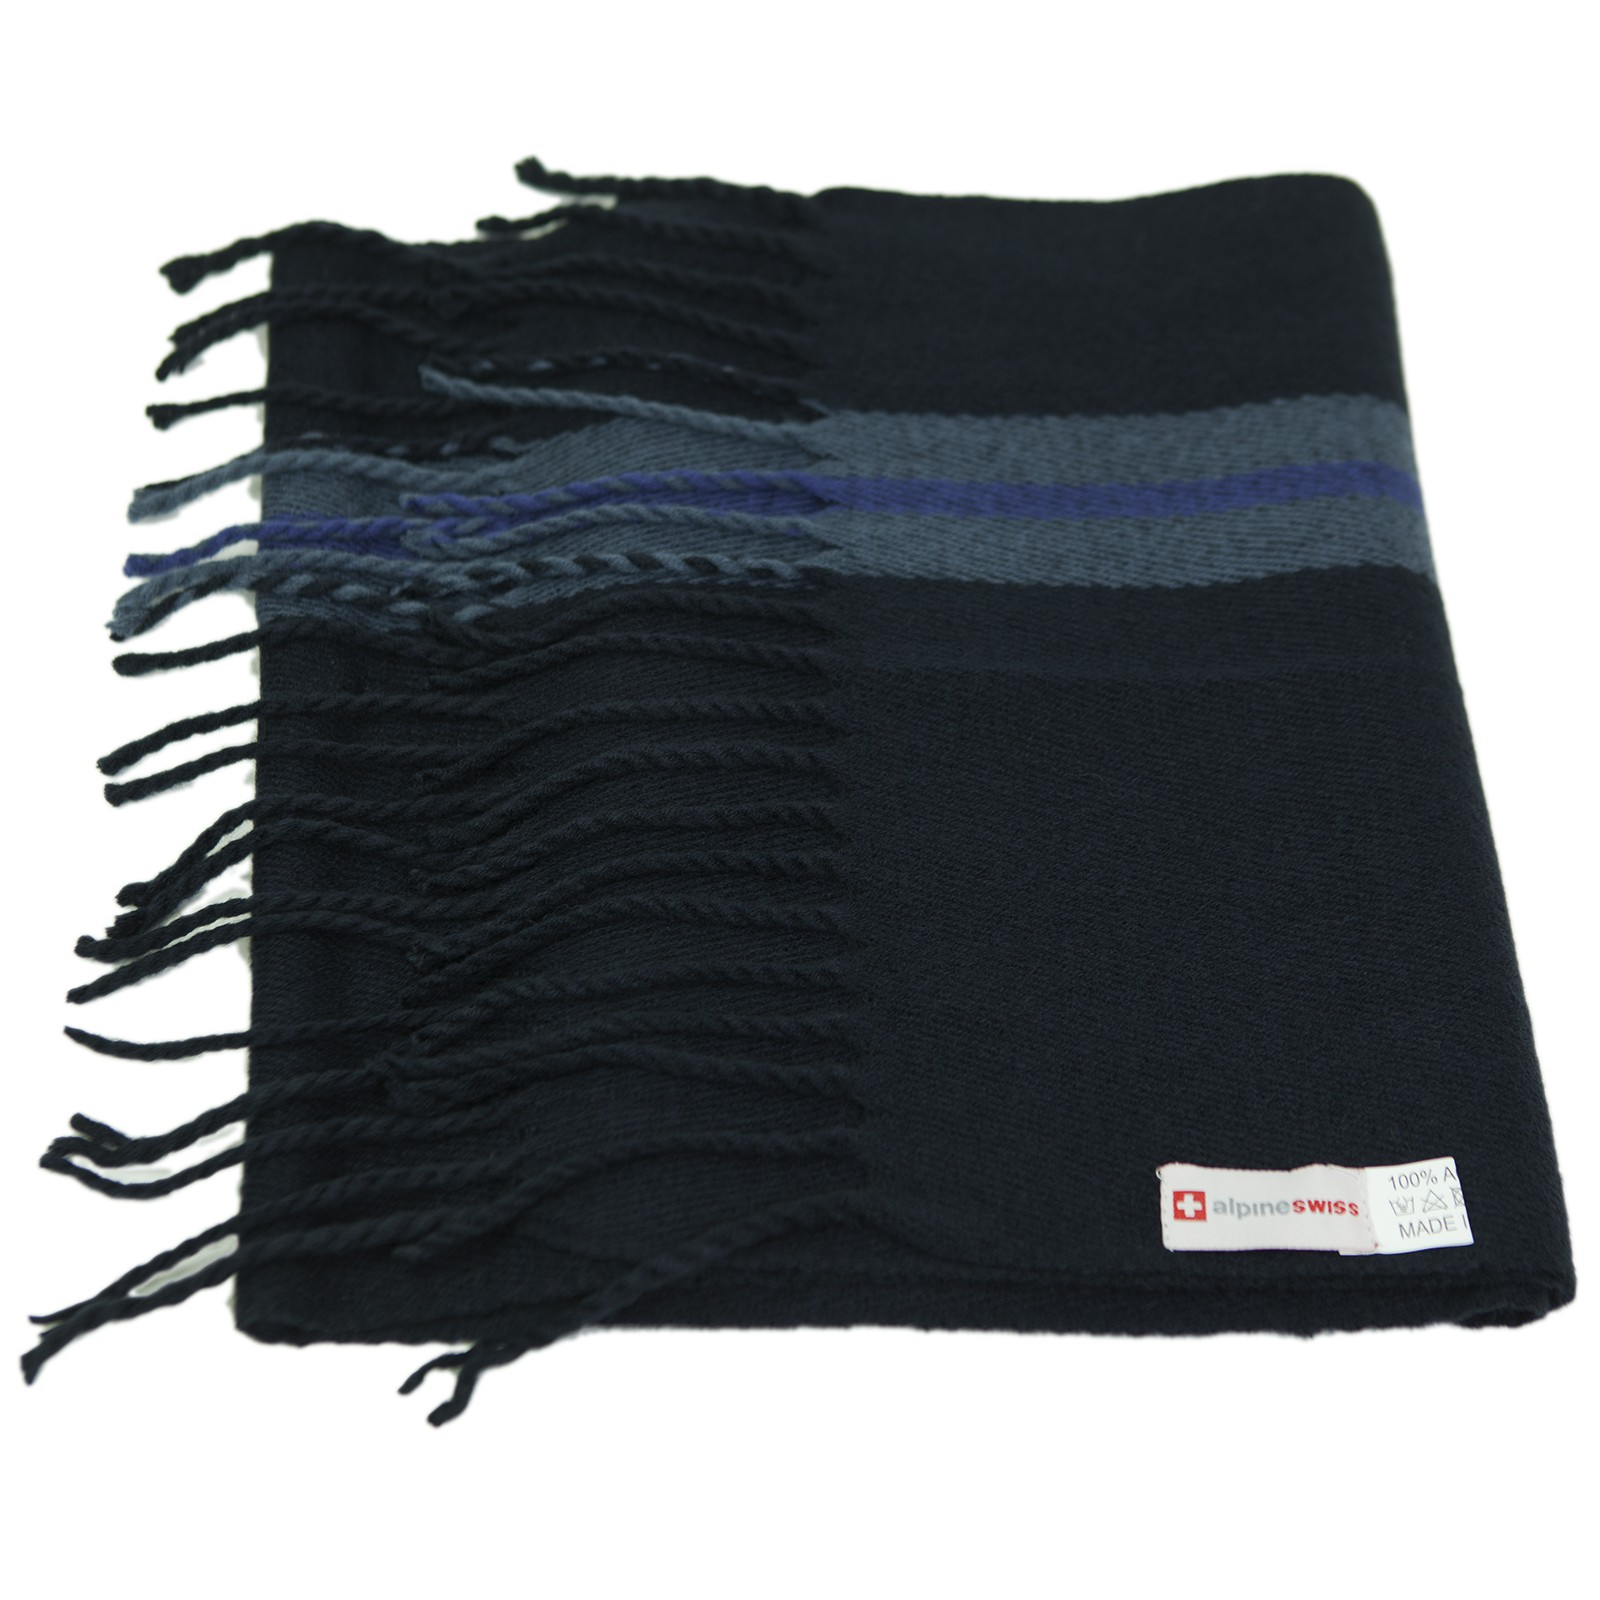 Alpine-Swiss-Mens-Scarf-Softer-Than-Cashmere-Scarves-Plaids-Womens-Winter-Shawl thumbnail 67